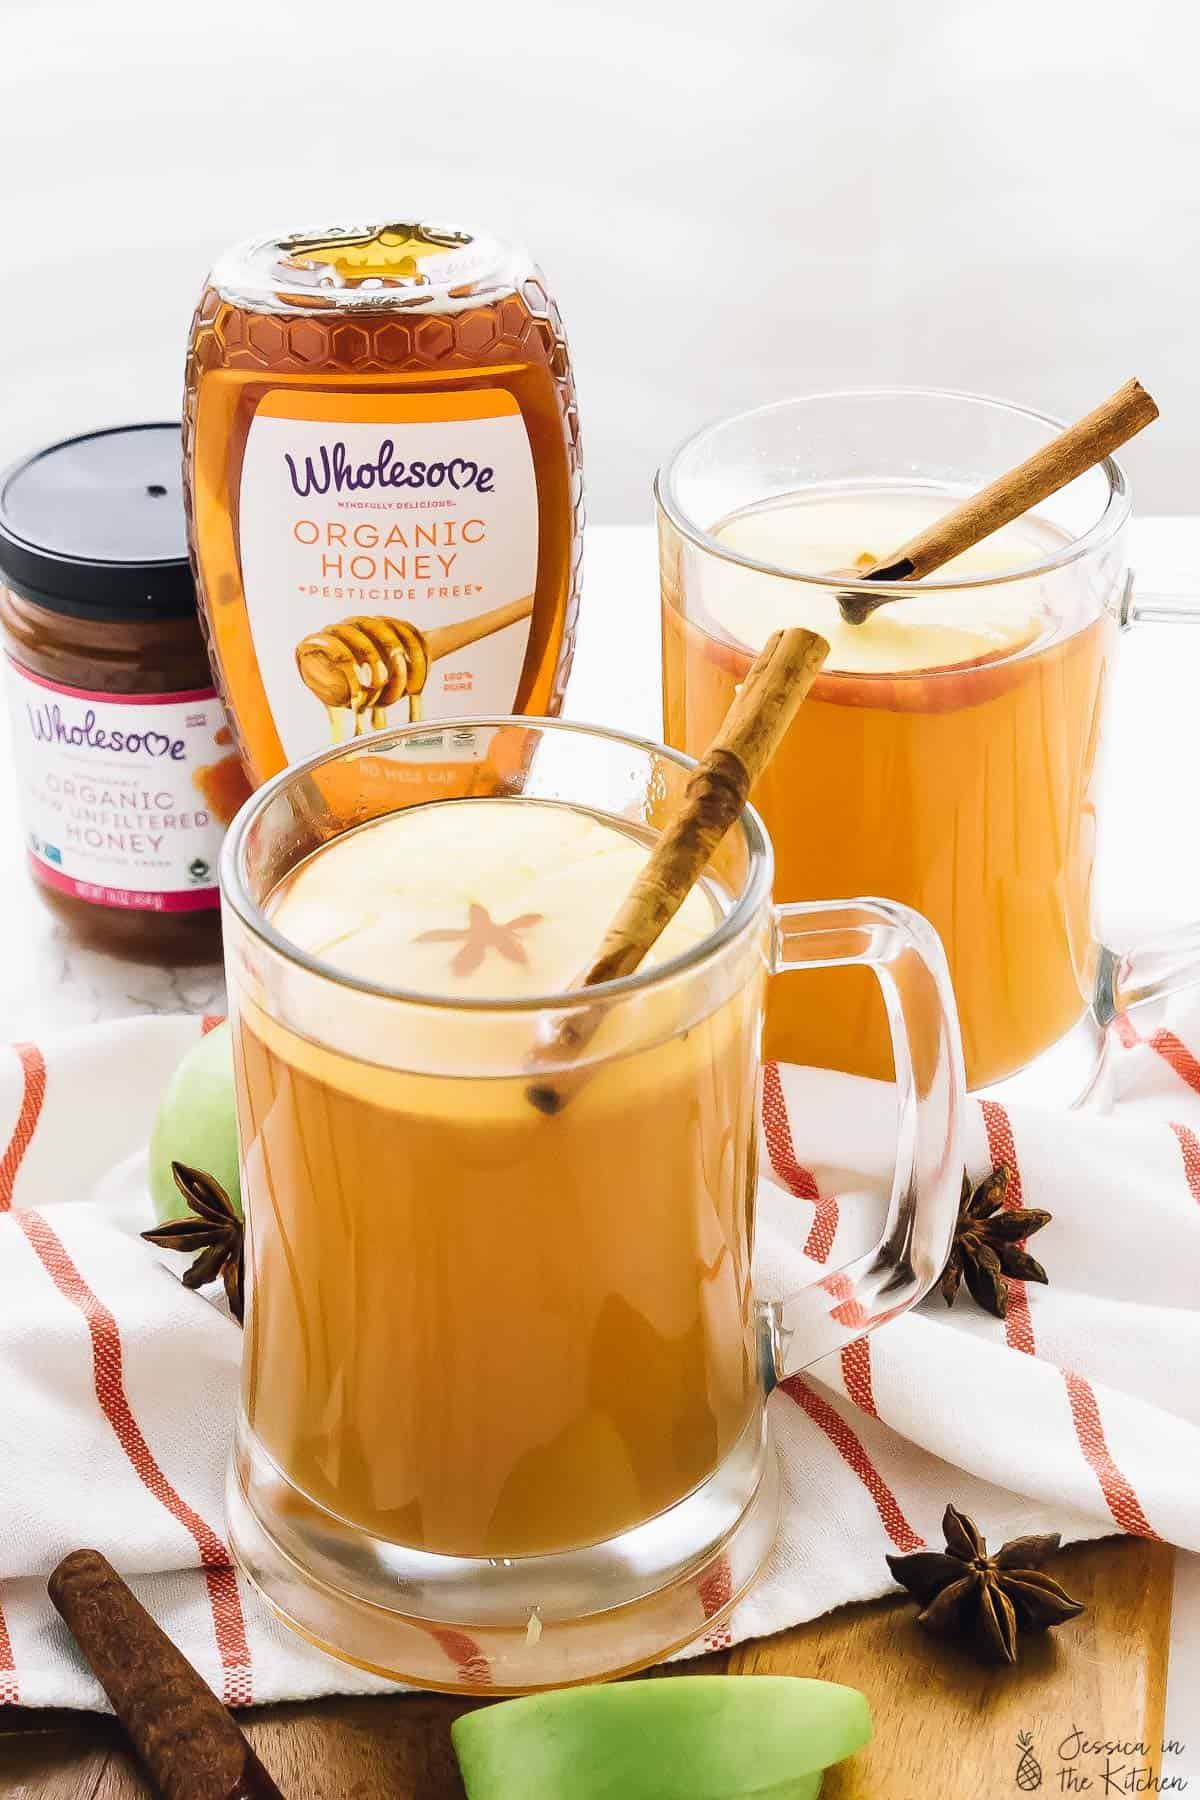 This Warm Spiced Apple Cider will warm you up this holiday season! It's made in your slow cooker, makes your house divinely fragrant, and tastes absolutely amazing!